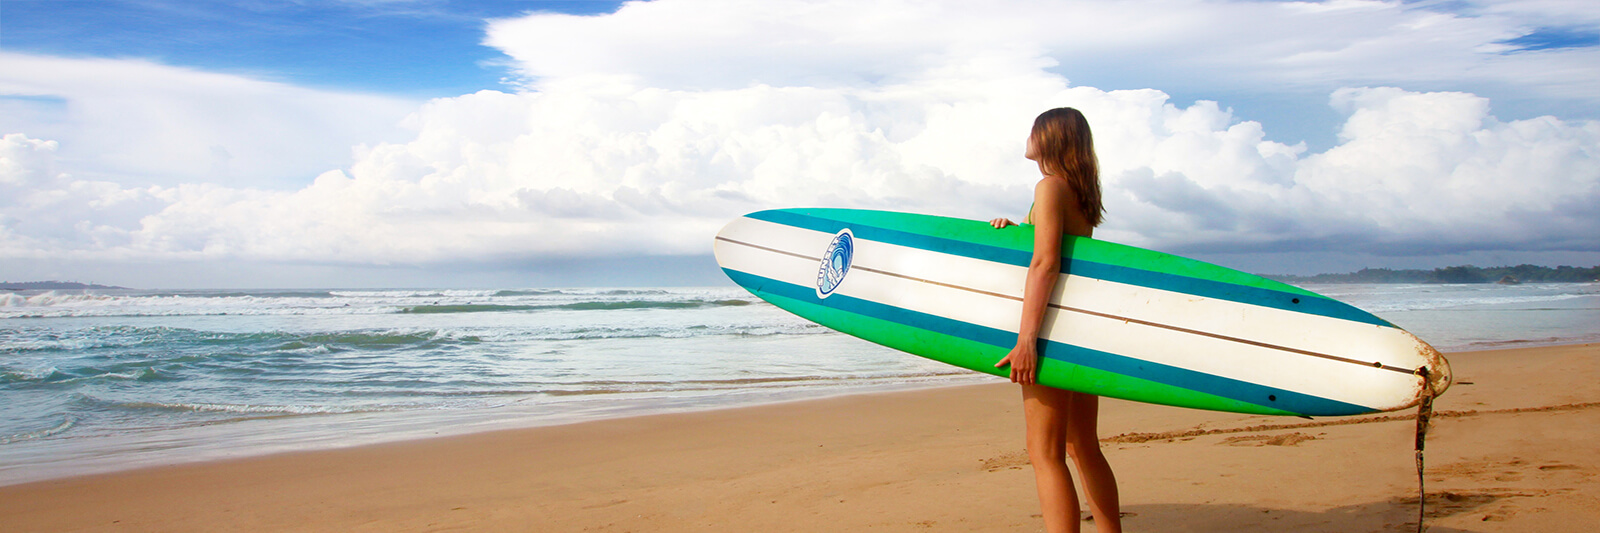 Getting ready to go surfing in Sri Lanka